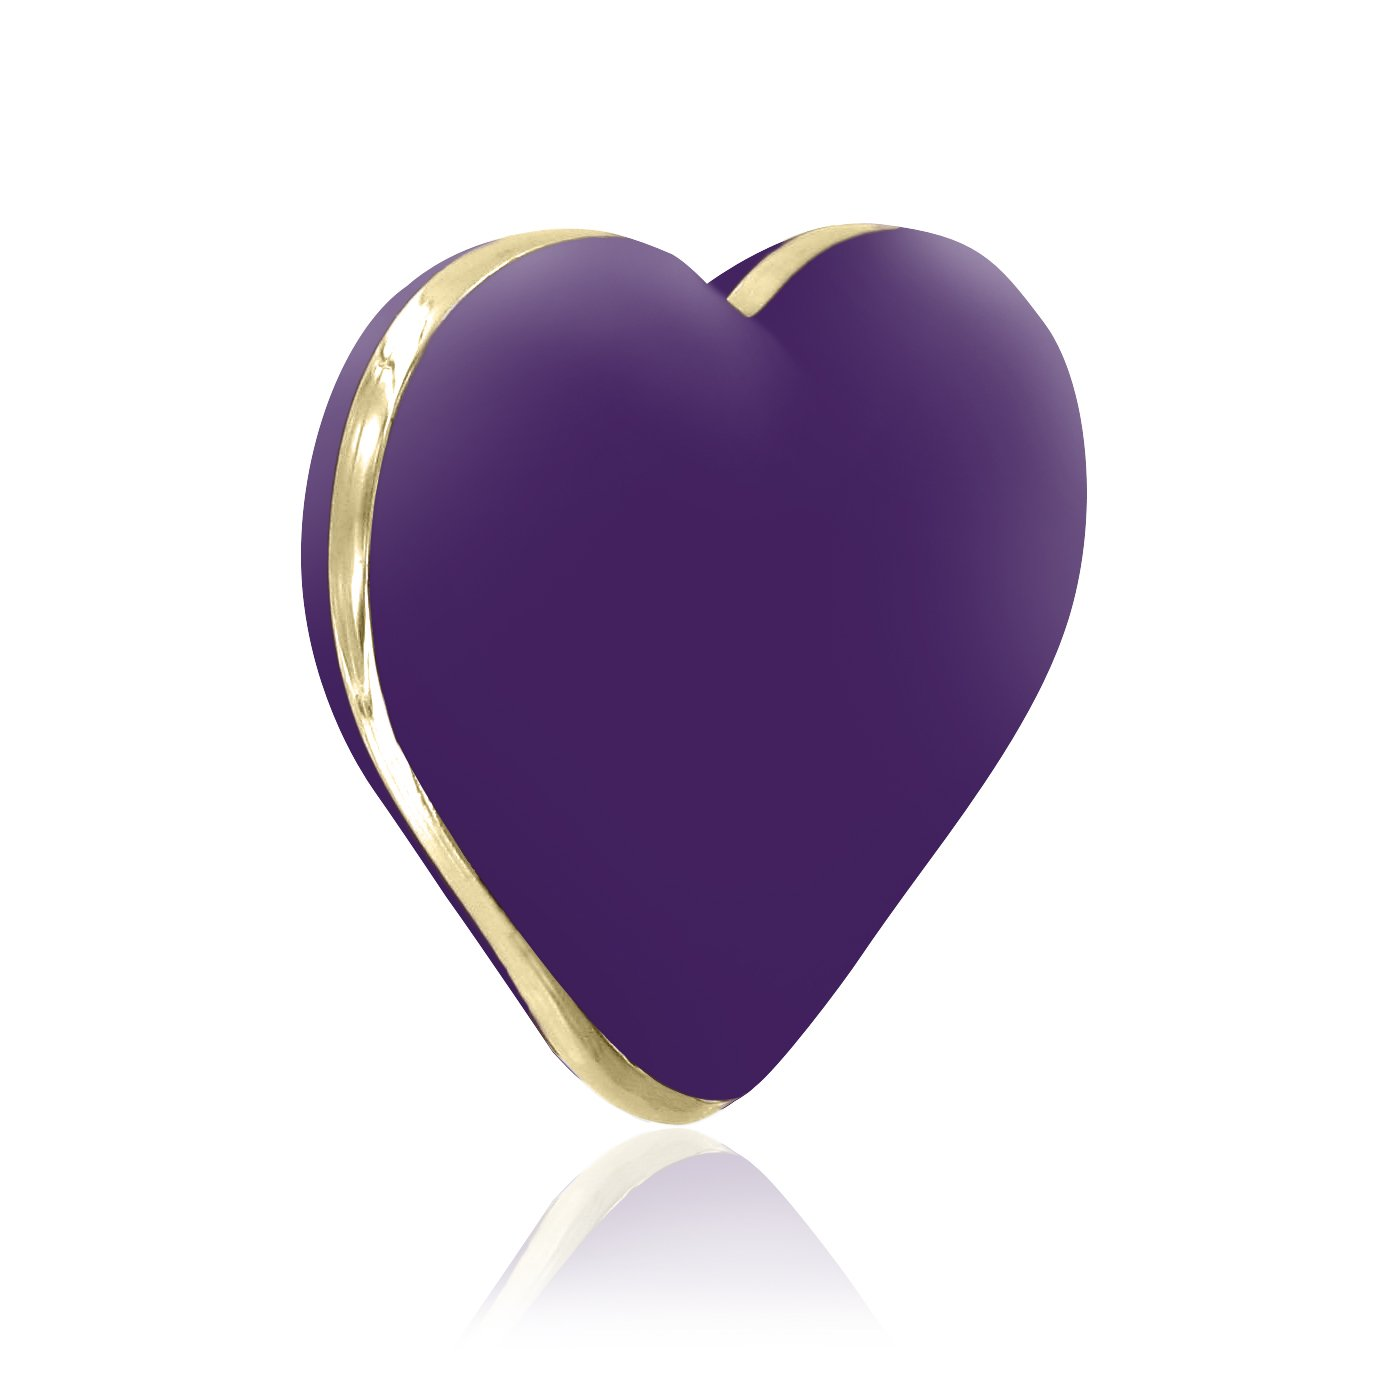 Rianne S Heart Vibe W Case Purple New mail order Deep Lowest price challenge cosmetic -